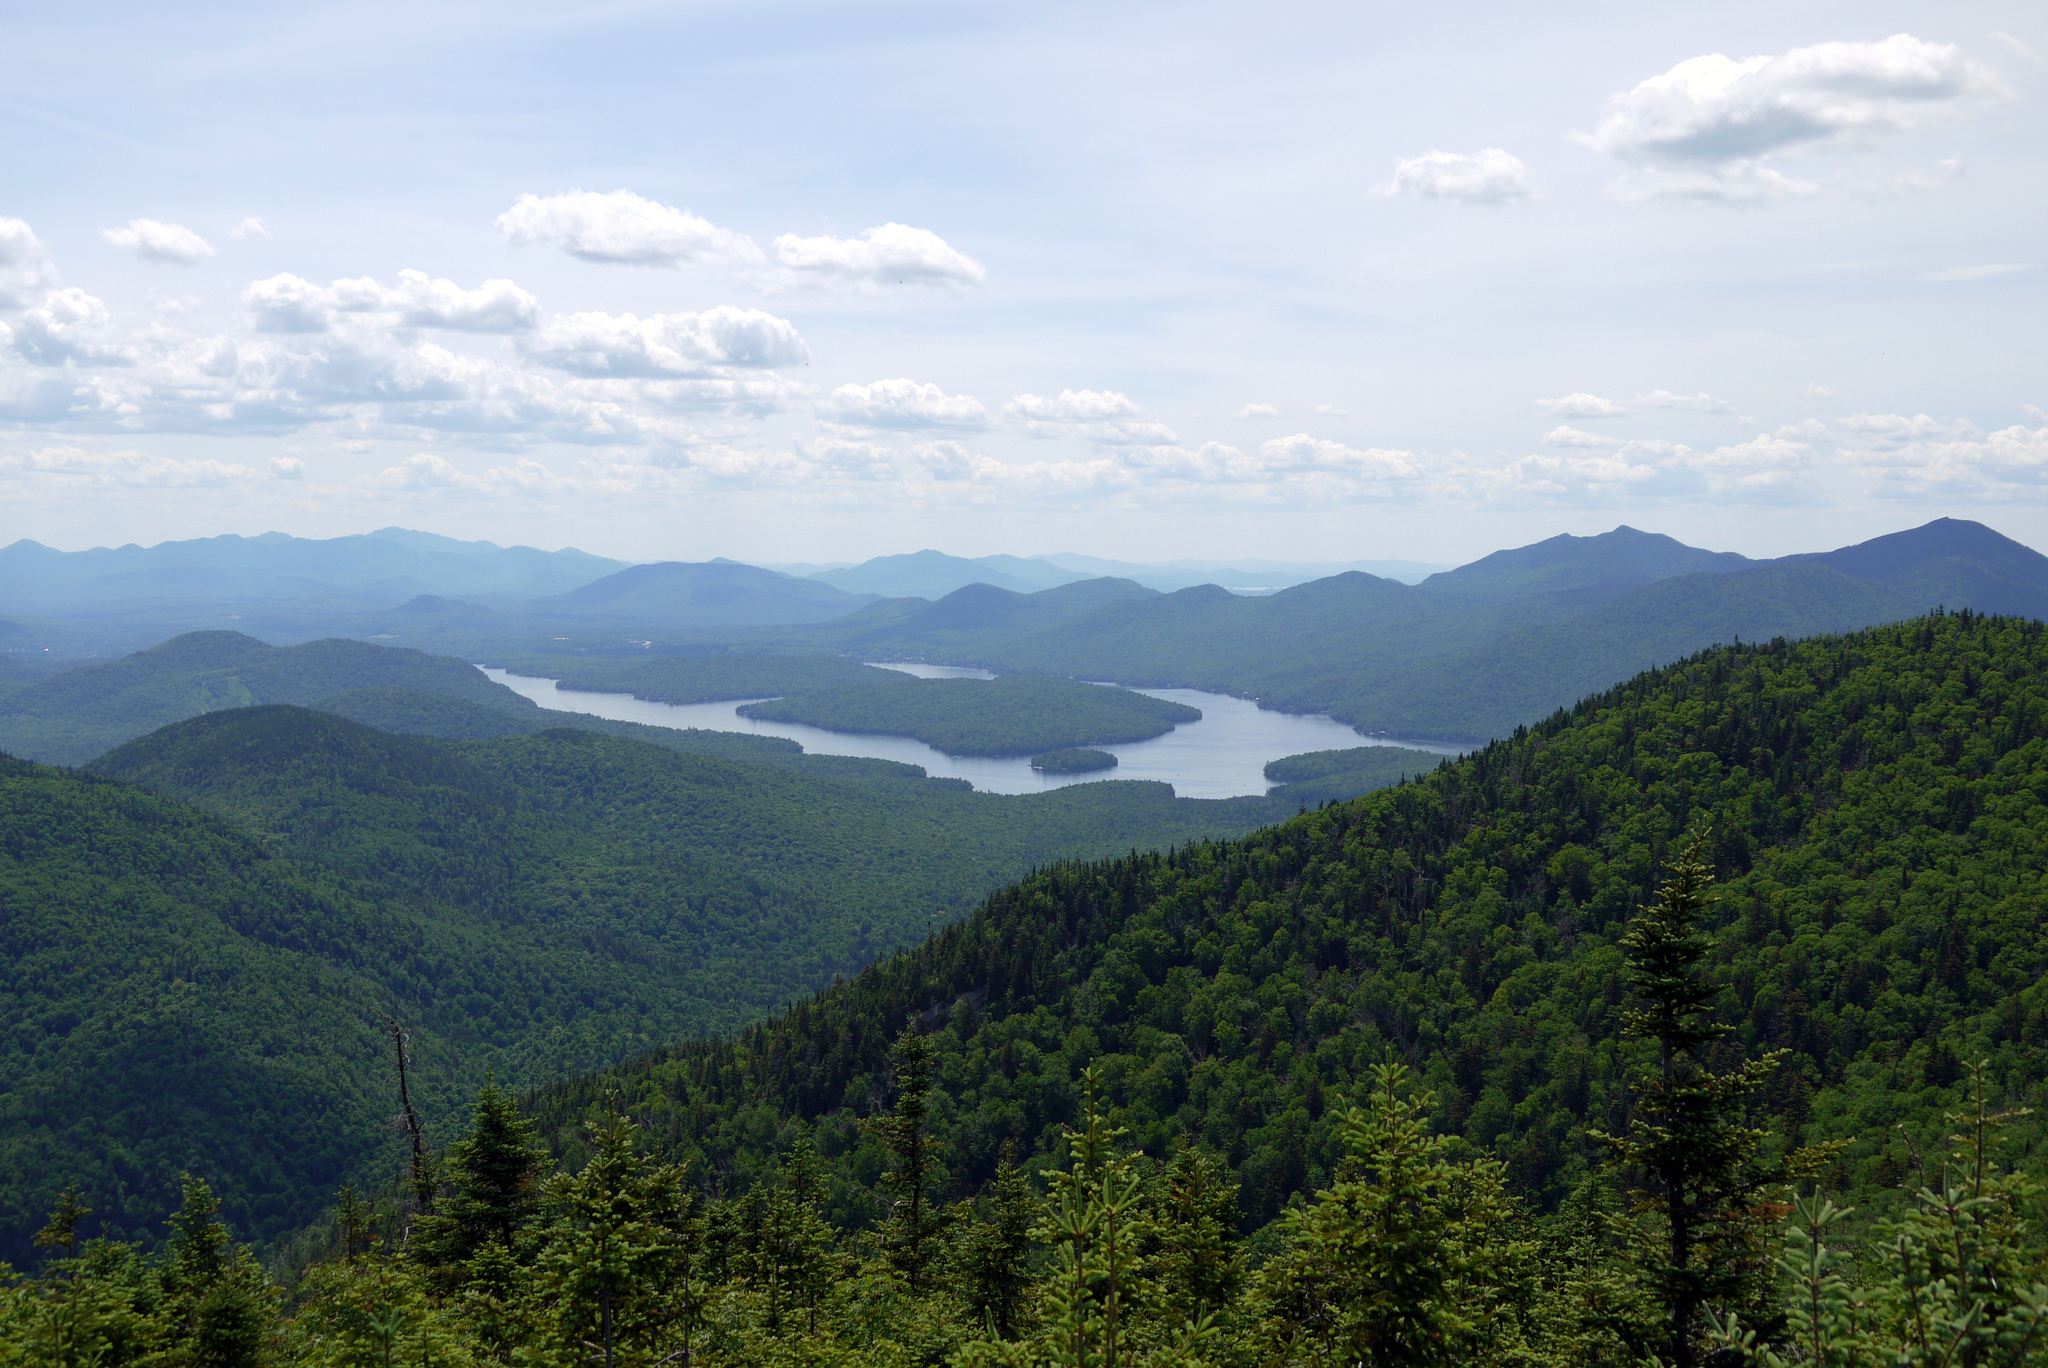 View of the green Adirondacks, with a lake in the distance.